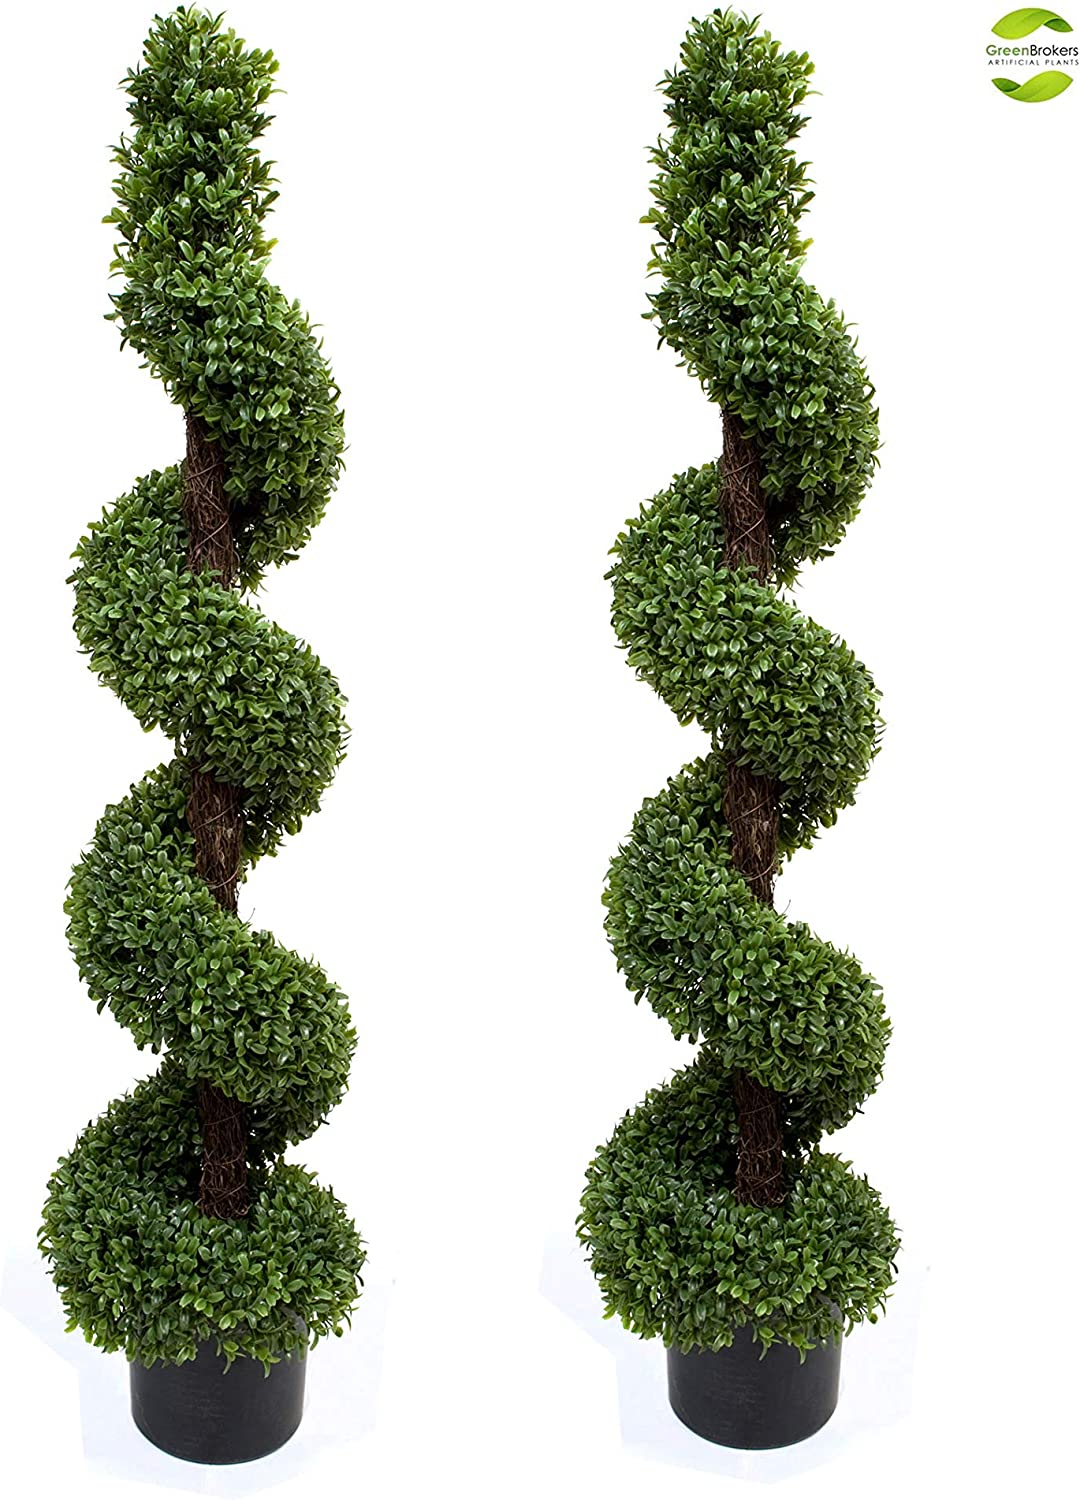 Artificial Topiary Boxwood Spiral Trees 4ft 120cm Pack Of 2 Amazon Co Uk Garden Outdoors